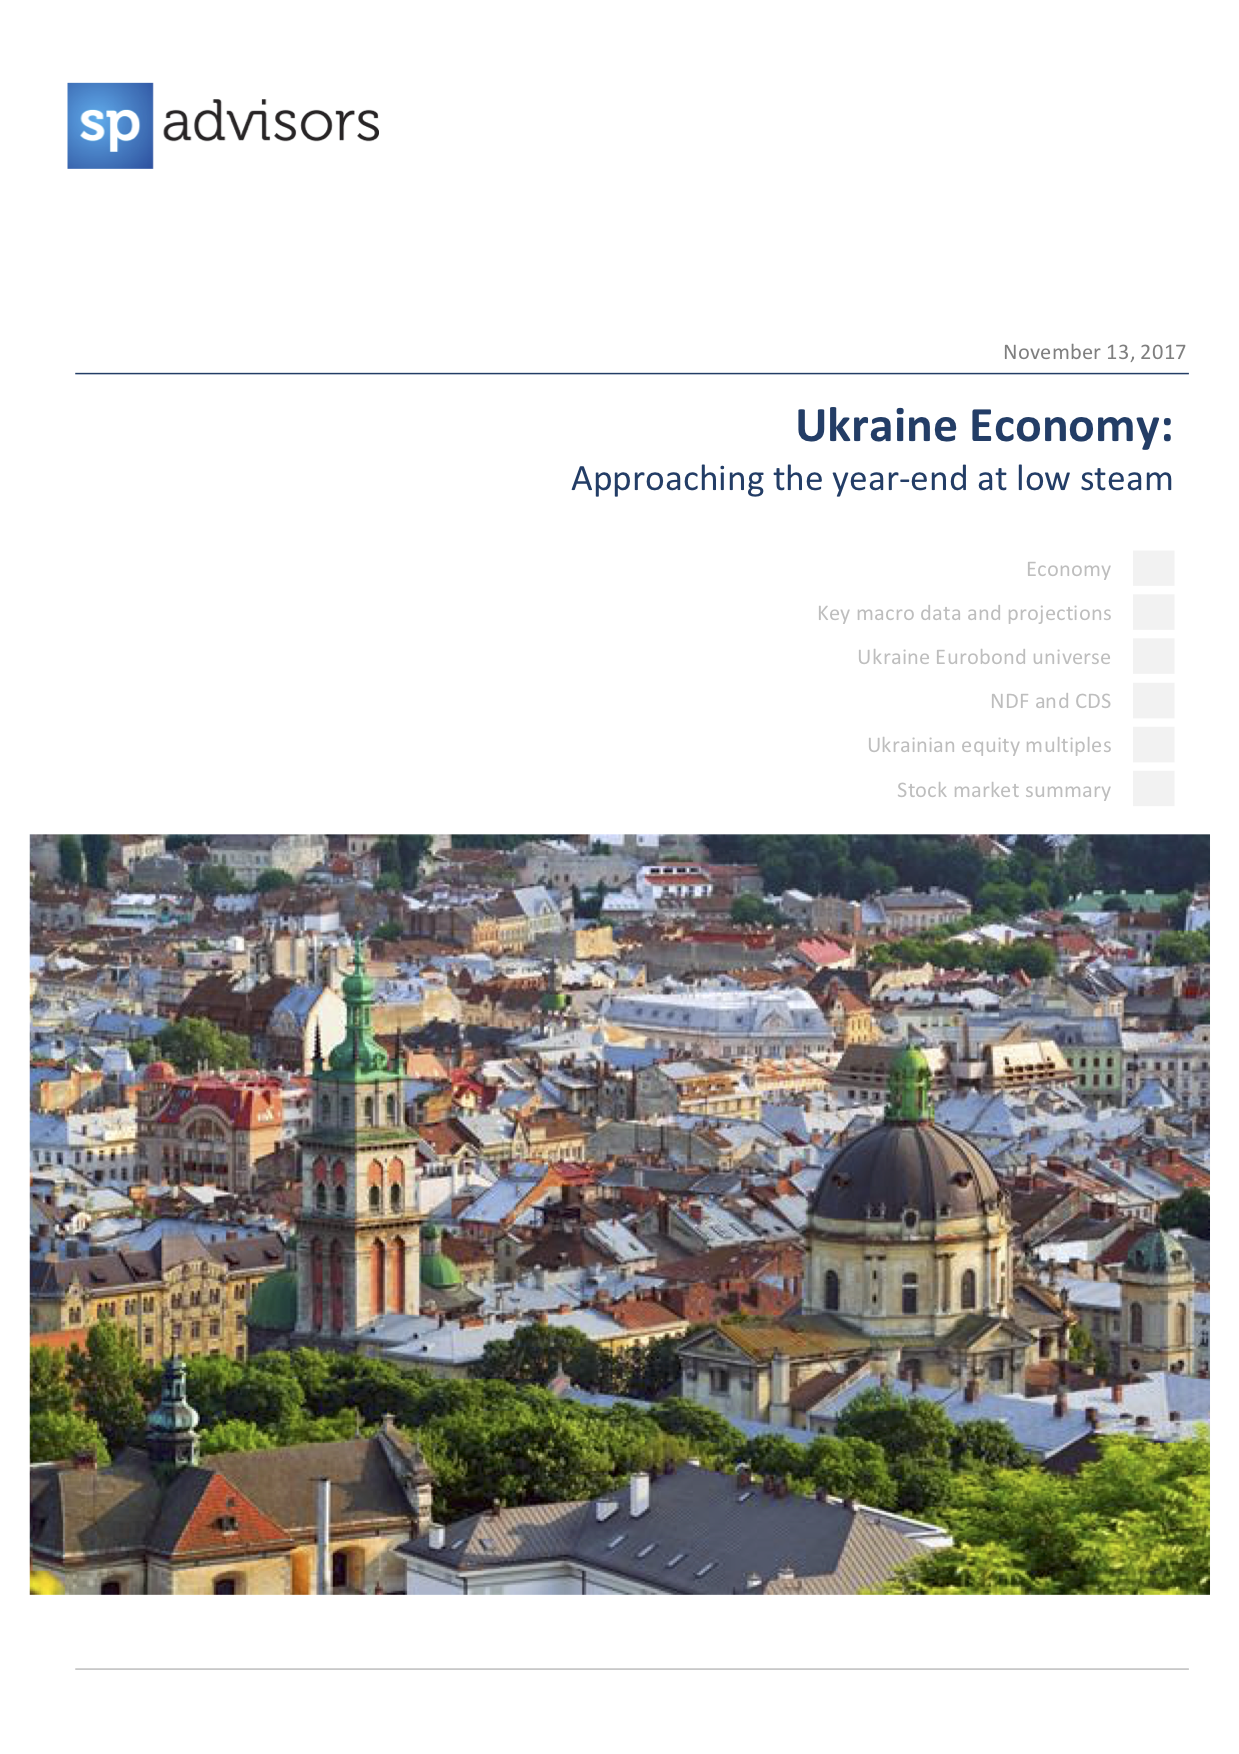 Ukraine Economy: Approaching the year-end at low steam. November 13, 2017